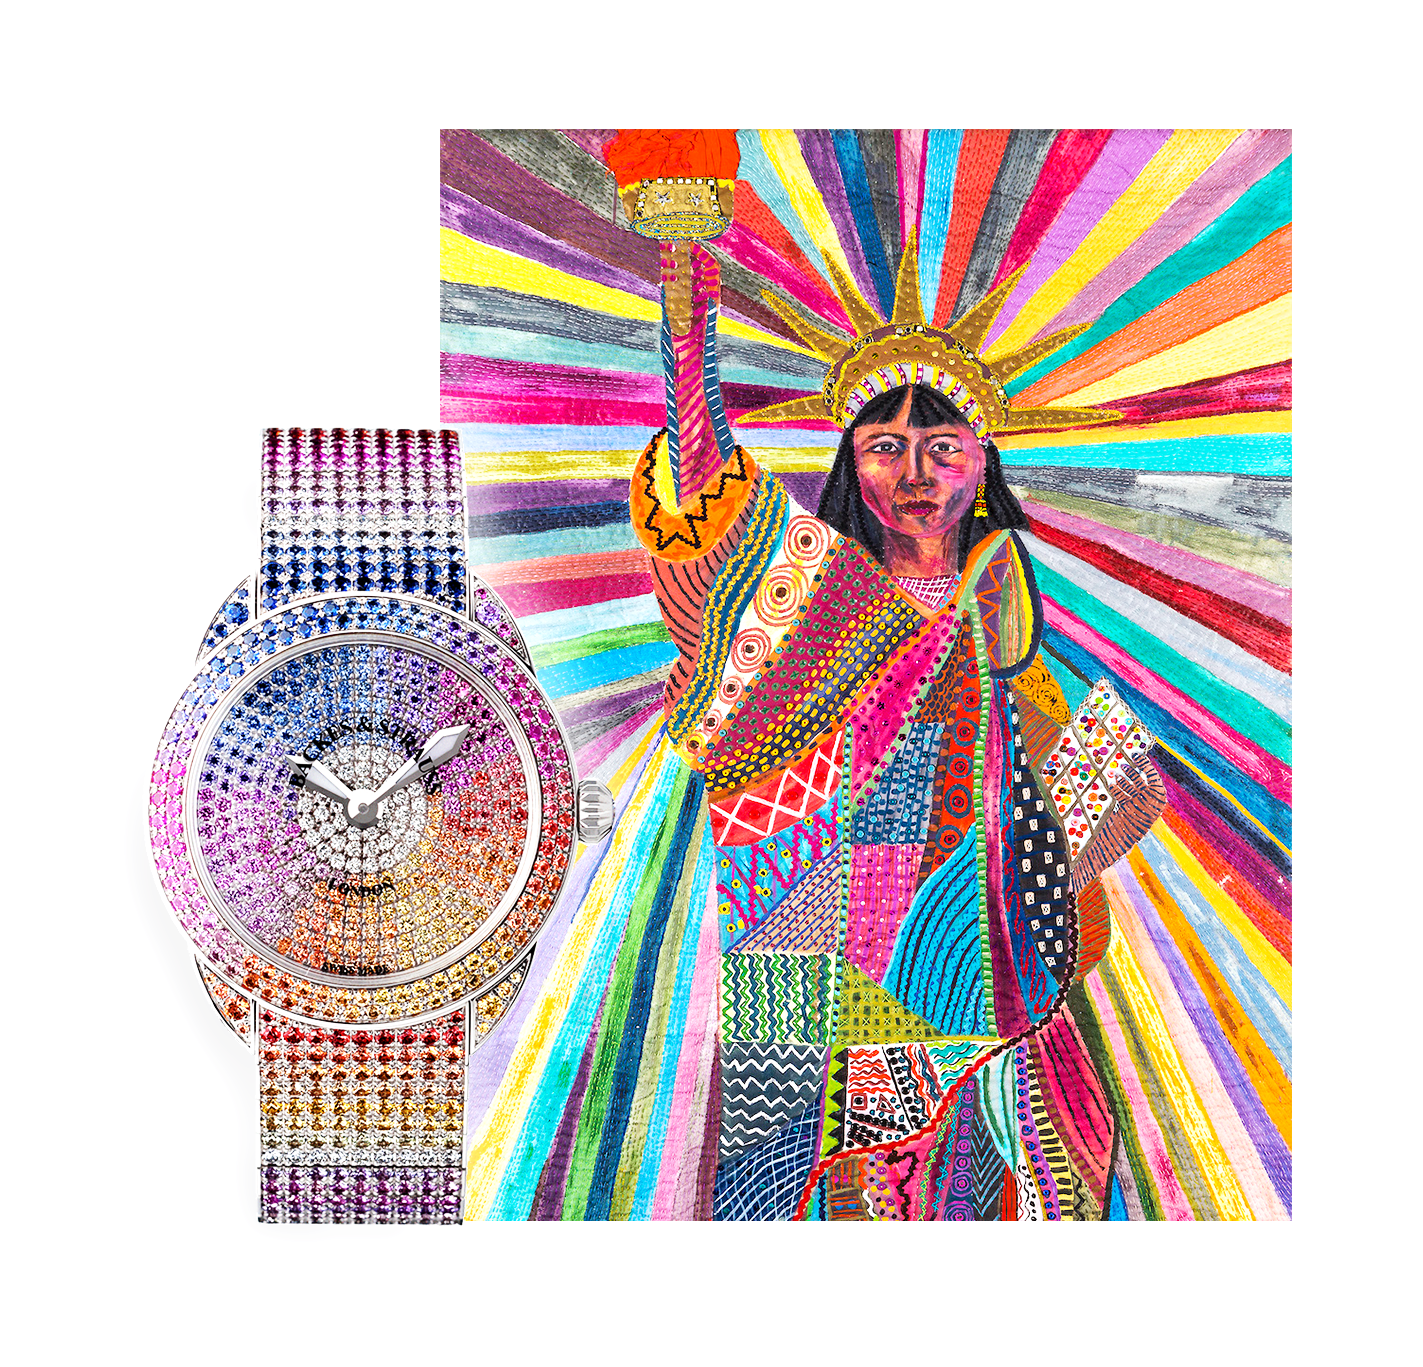 """Left: Our """"Piccadilly Renaissance Ballerina Rainbow"""". Right: Patricia Abad's """"L.A. Liberty""""."""